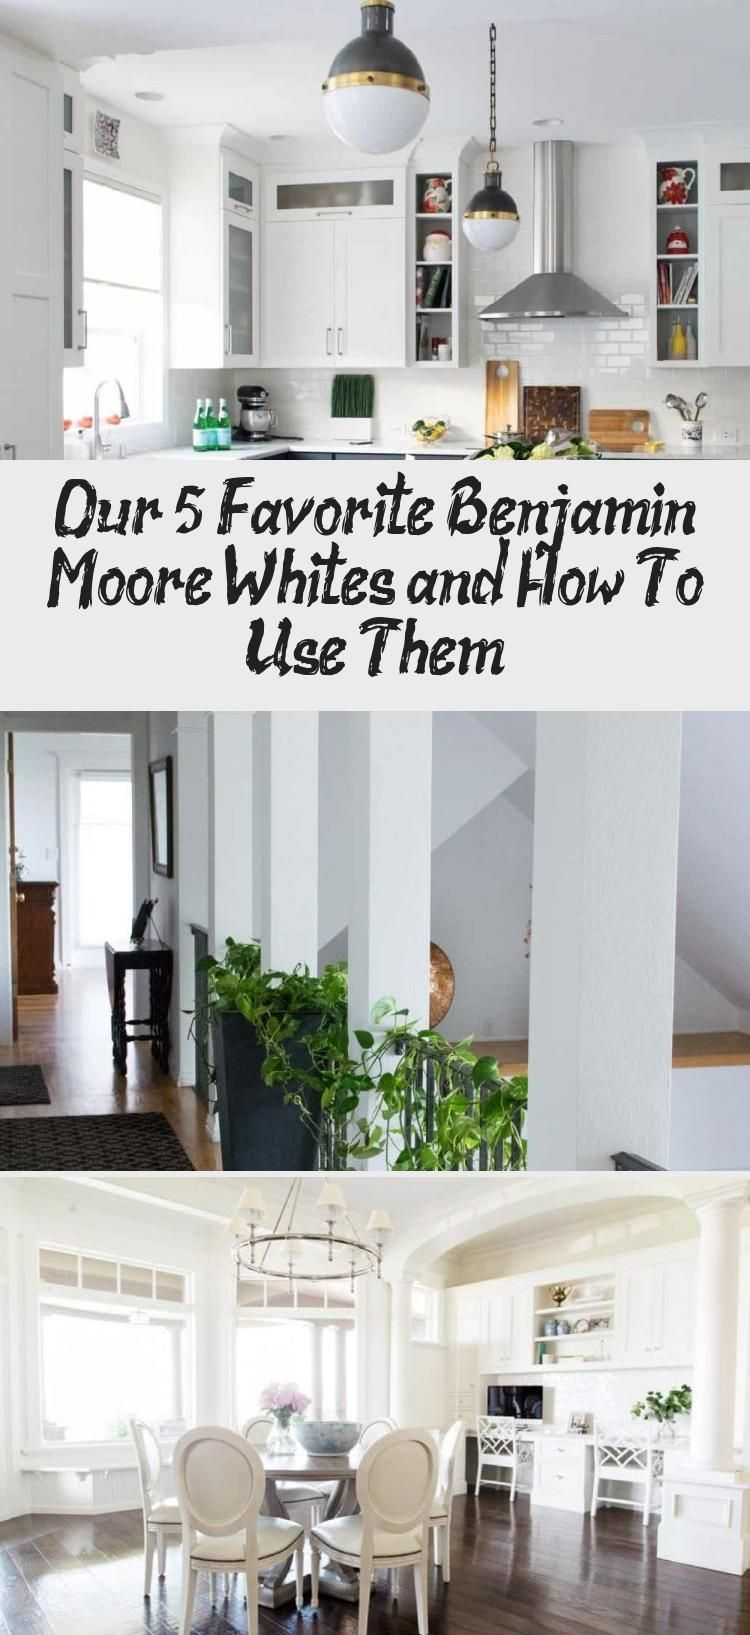 White Paint colors are the latest go-to trend. We put together a post on our favorite Benjamin Moore white paint colors (and when to use them) with their Sherwin Williams and Behr matches. Our favorites are White Heron, Chantilly Lace, Simply White, Swiss Coffee and Classic Gray. #paintcolorideas #bestpaintcolors #whitekitchens #whitepaintcolors #whitepaint #thecolorconcierge #Benjaminmoore #sherwinwilliams #behr #thecolorconcierge #CoastalPaintColors #PaintColorsForHome #PaintColorsWithWoodTr